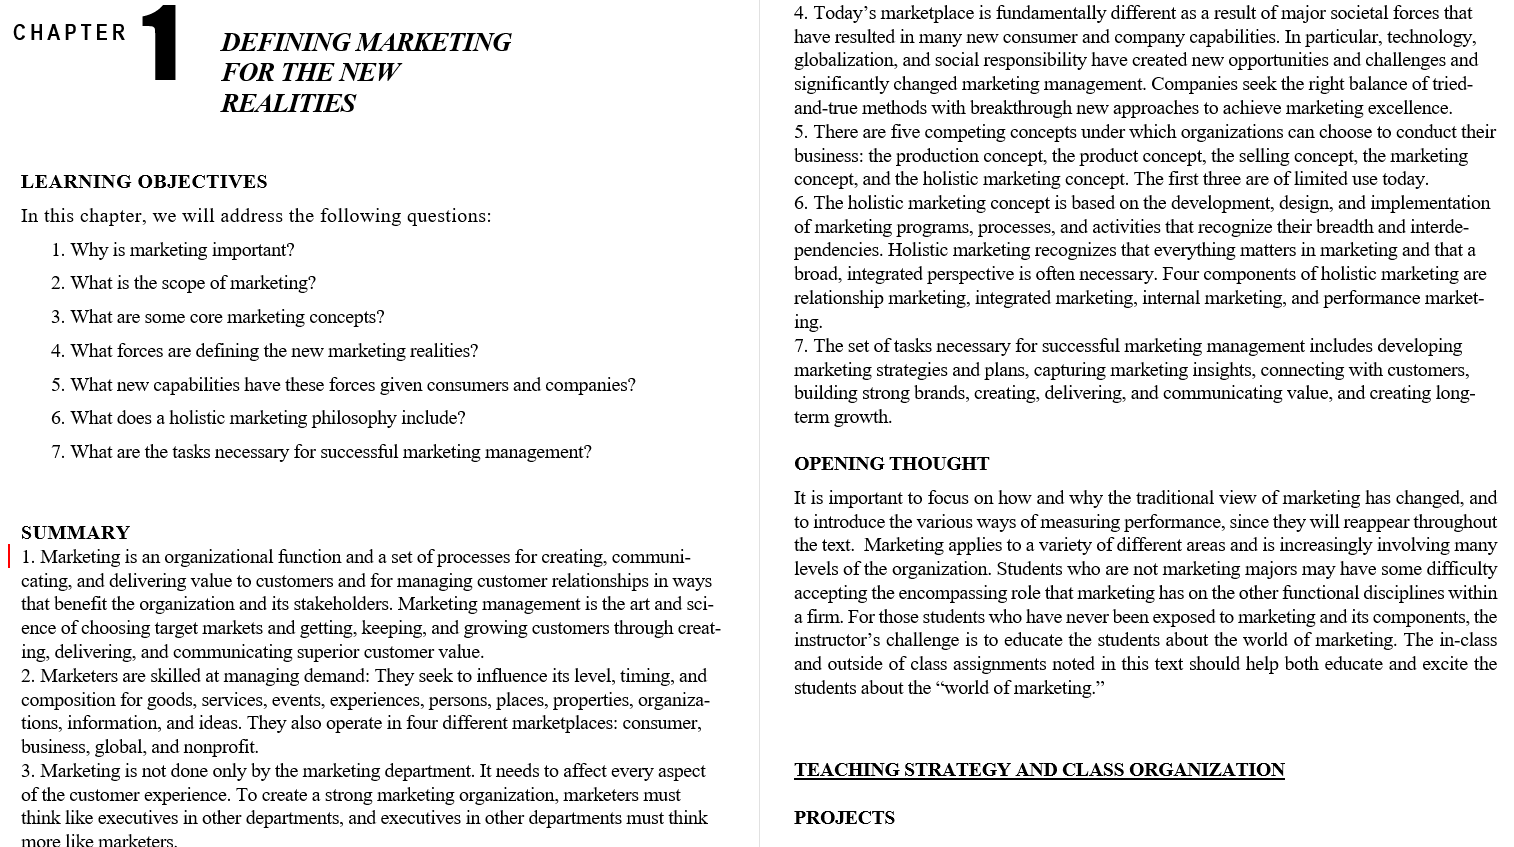 solution manual for Marketing Management 15th Edition的图片 3